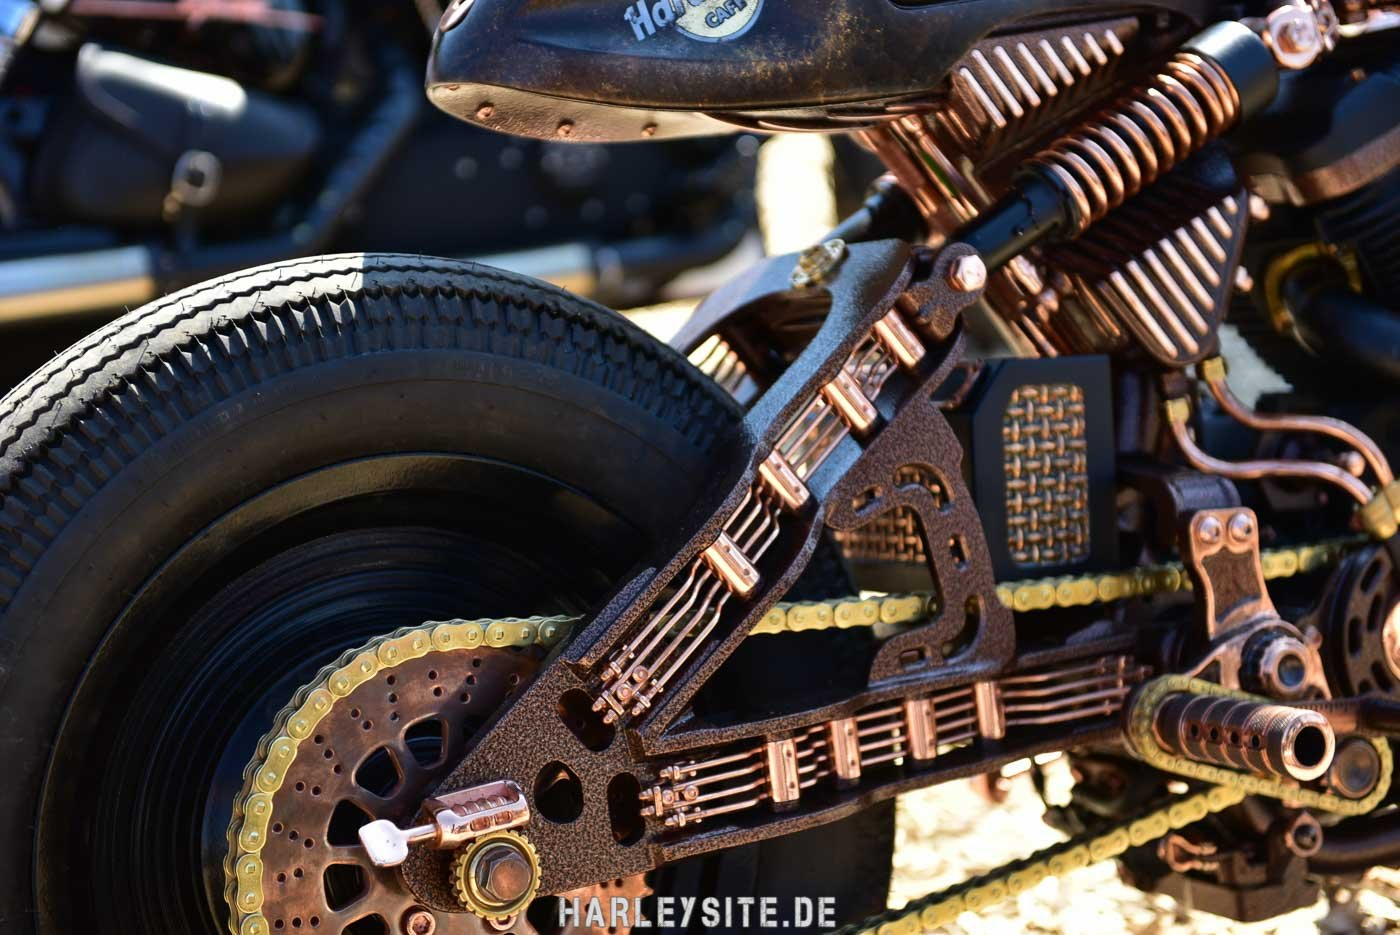 European-Bike-Week-91